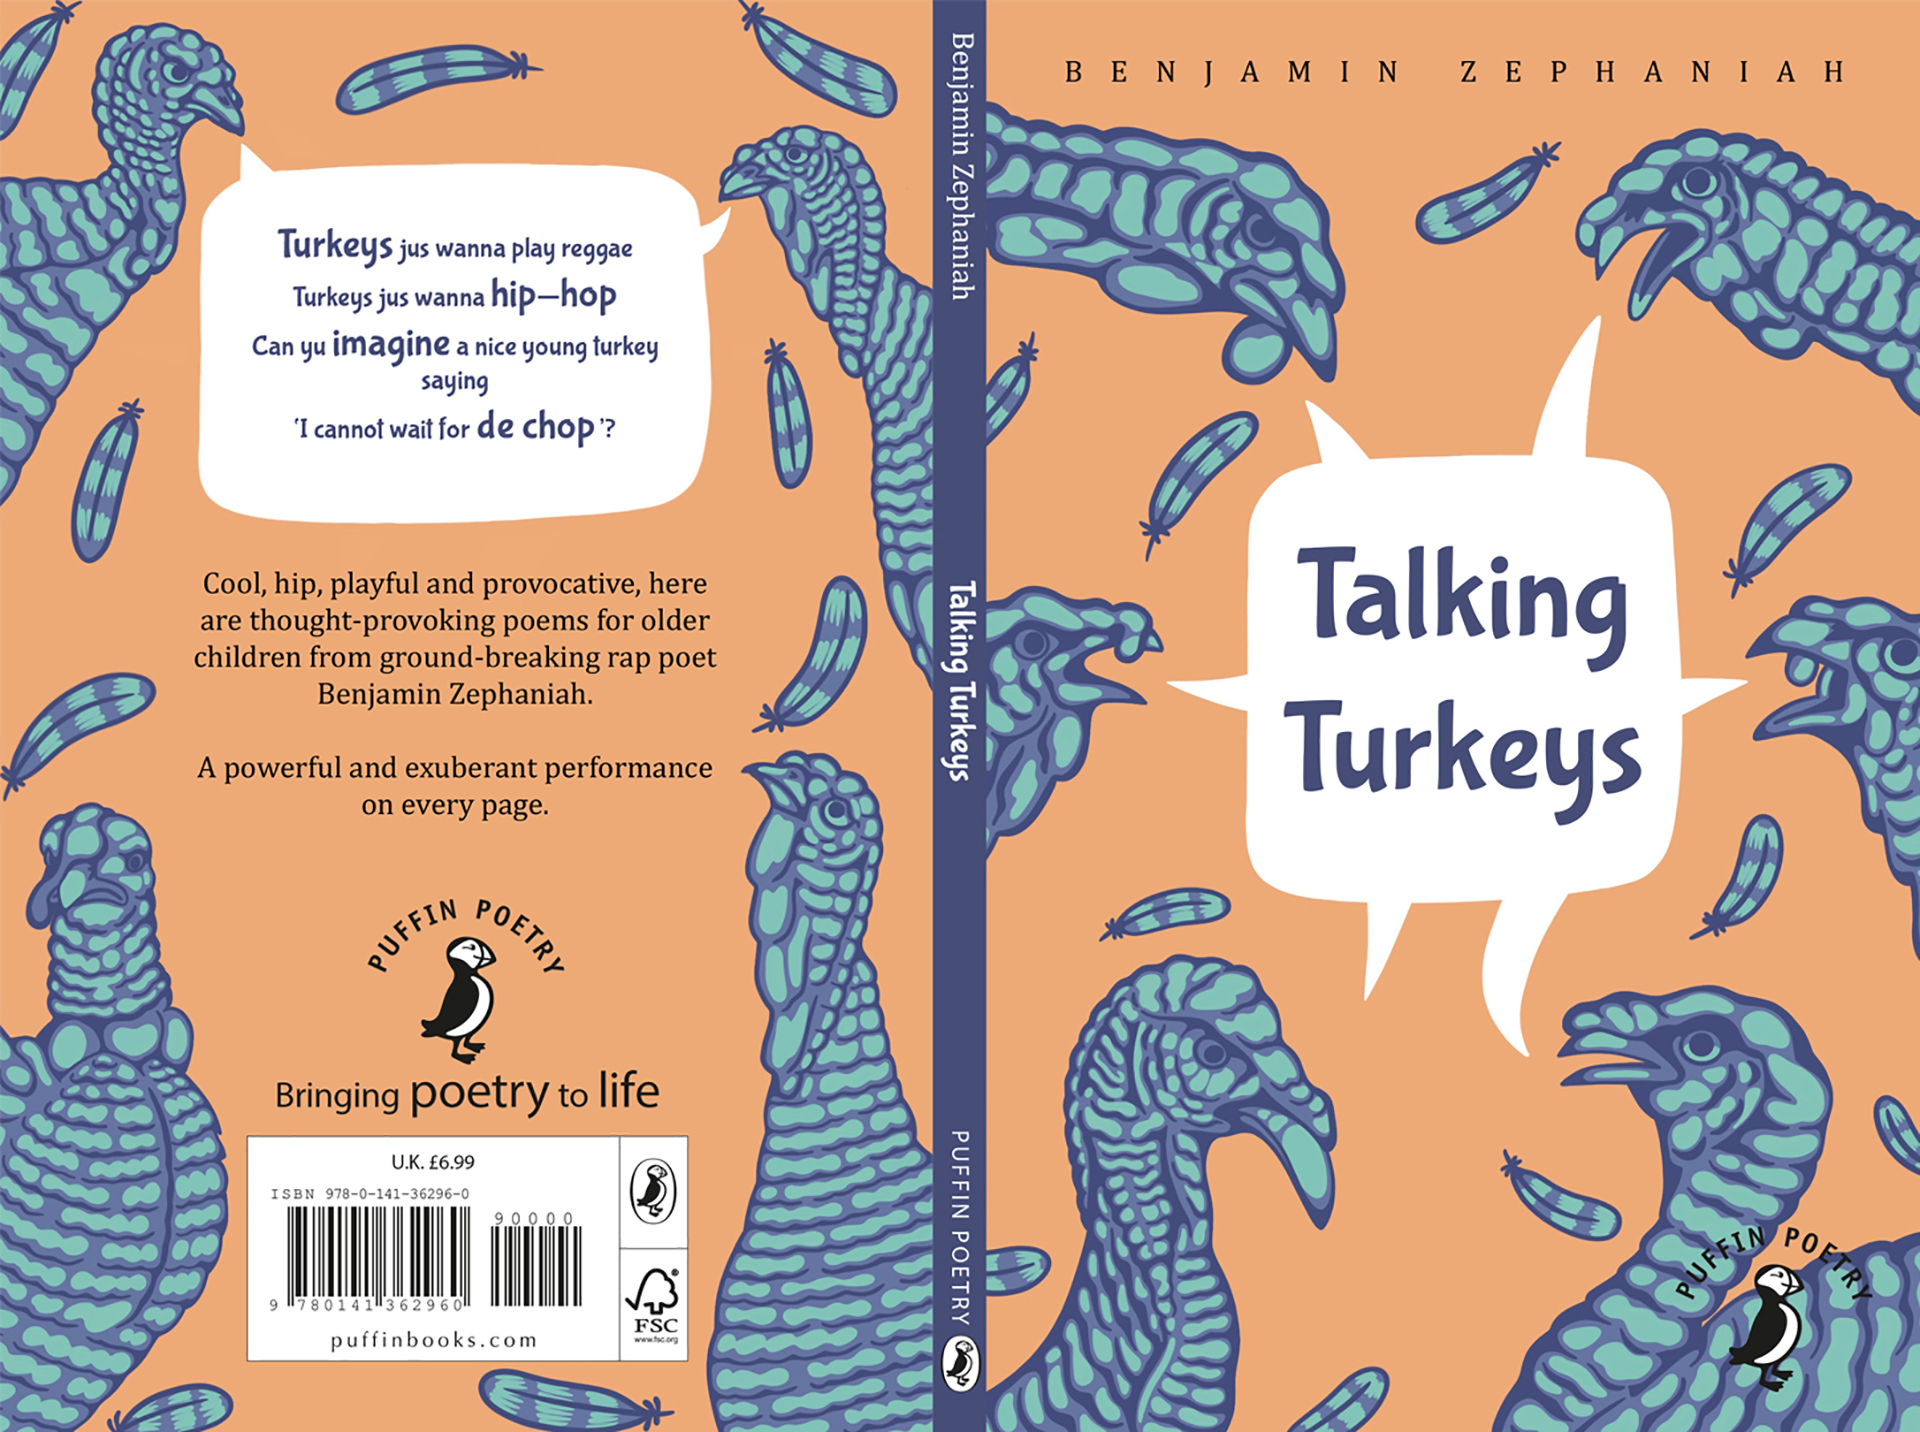 Book jacket design laid flat showing the front and back cover with illustrations of turkeys and book blurb text